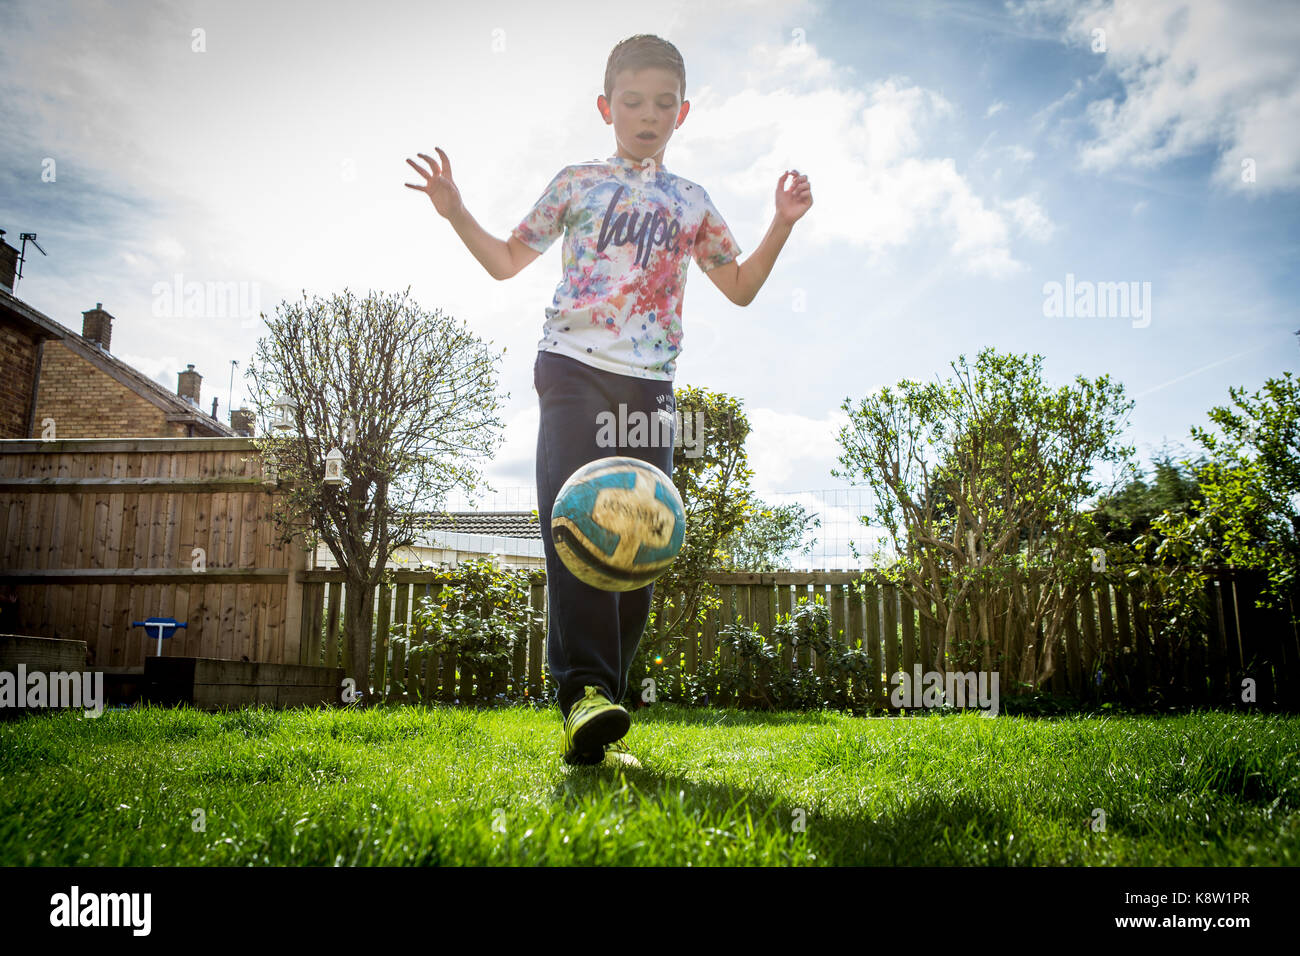 young boys playing football - Stock Image